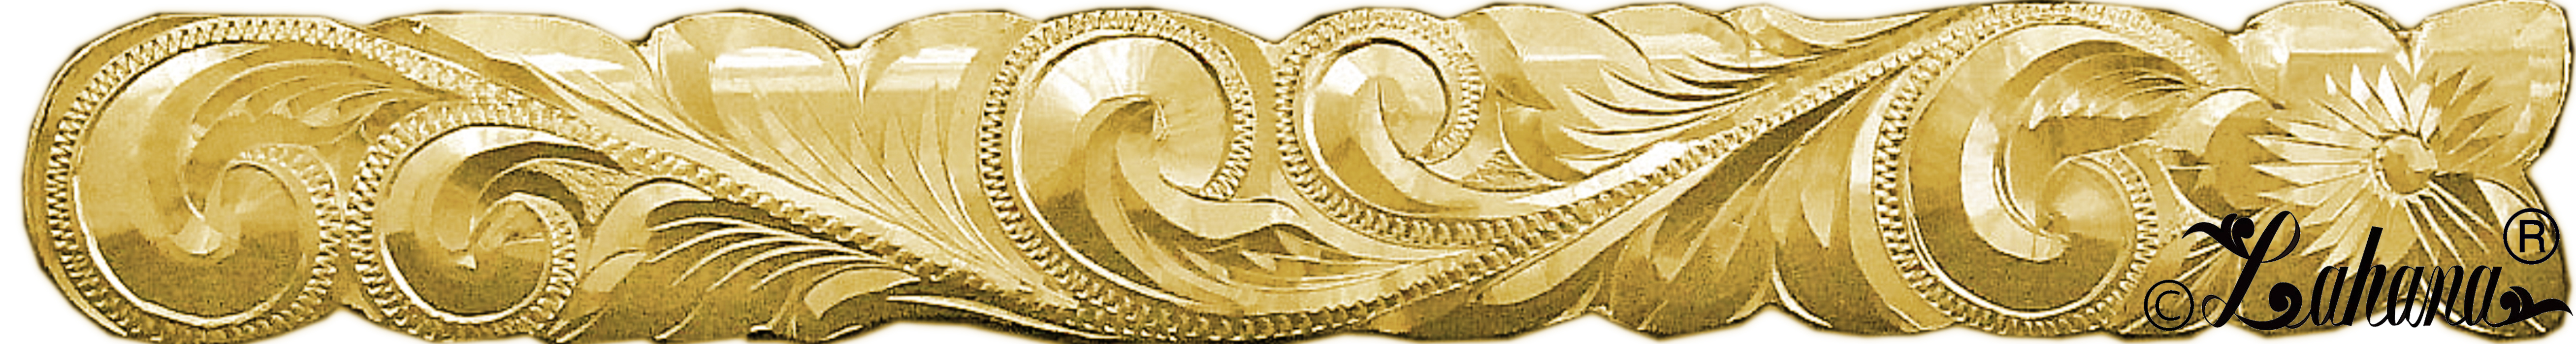 14k-sample-logo-ad-g.jpg